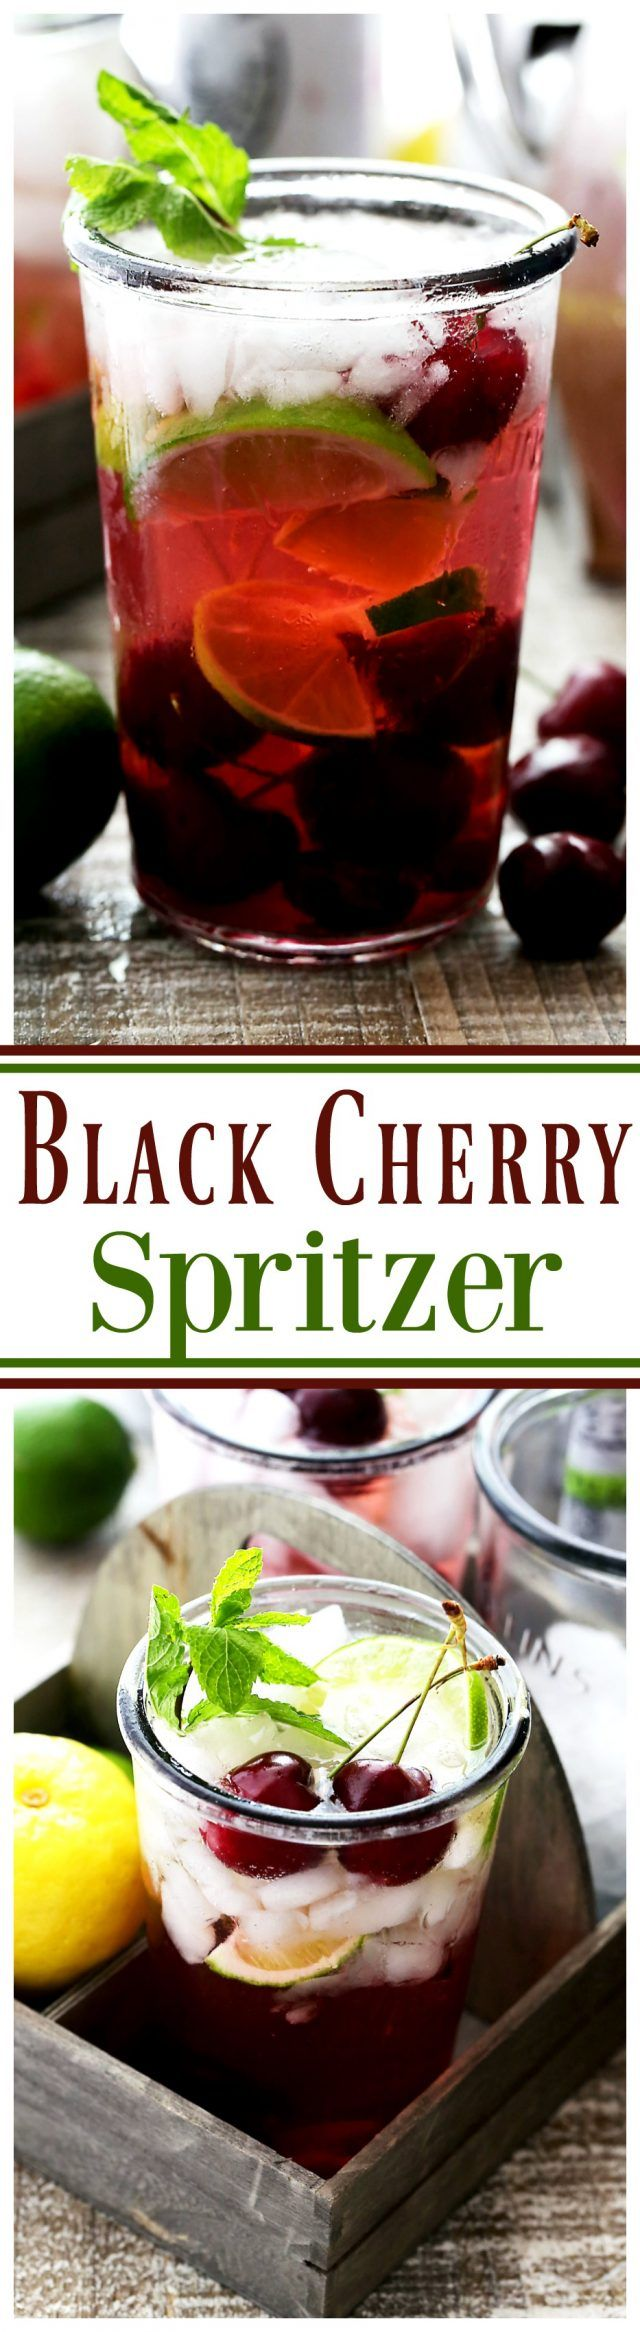 Black Cherry Spritzer - A sweet and refreshing mixture of homemade cherry syrup paired with a black cherry flavored seltzer water. Serve this up at your next summer gathering and watch it all disappear! #ad